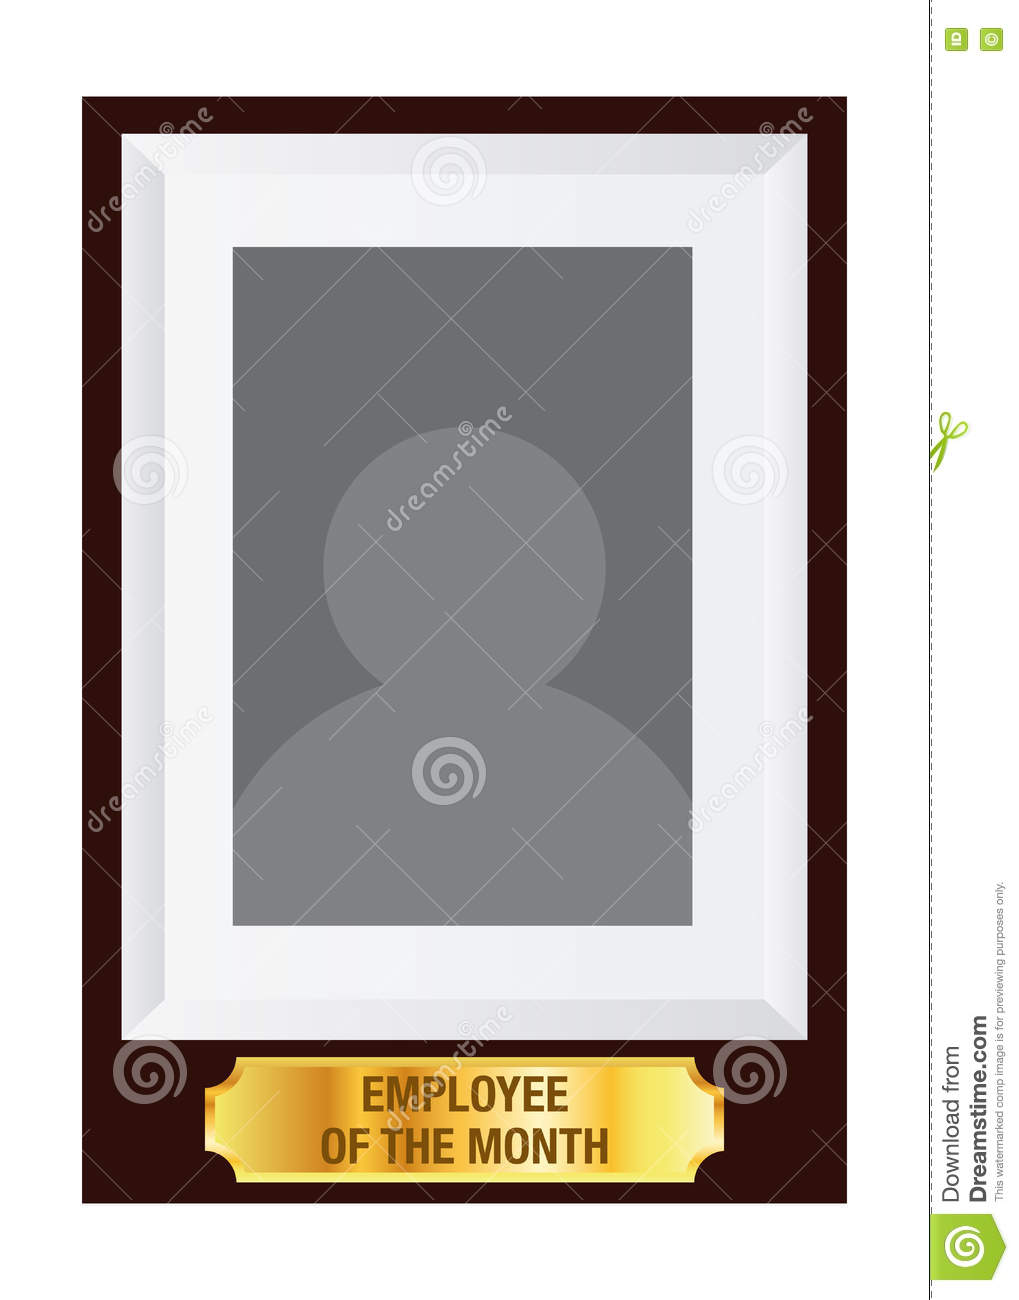 employee of the month free template - Boat.jeremyeaton.co